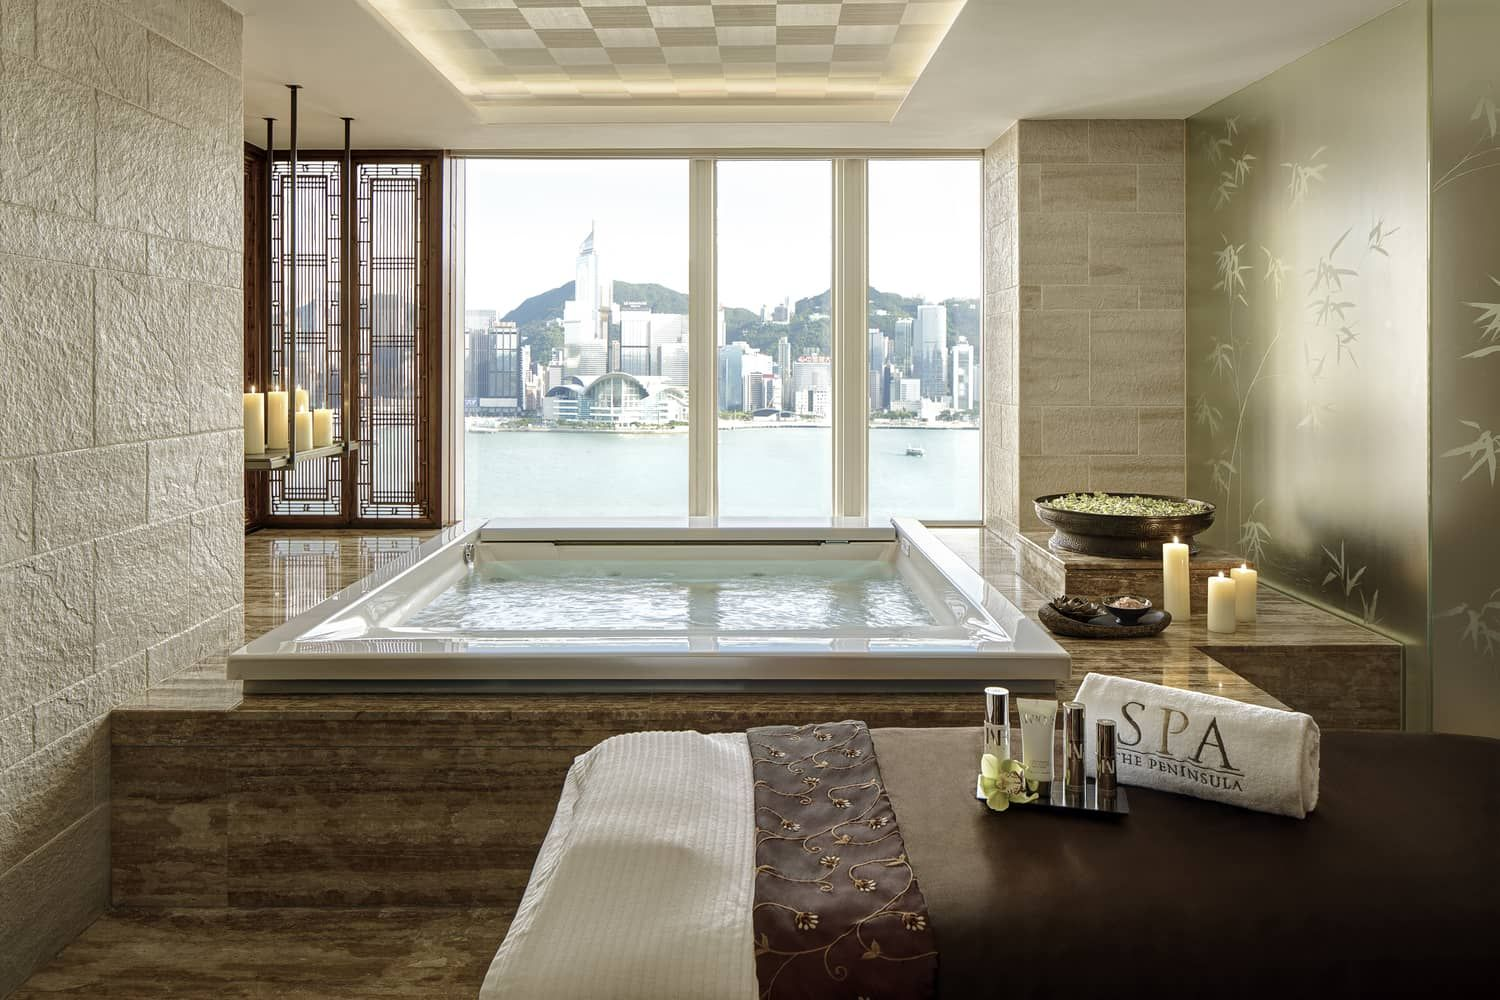 The Best Hotel Spas In Hong Kong—Plus Top Spa Treatments To Try